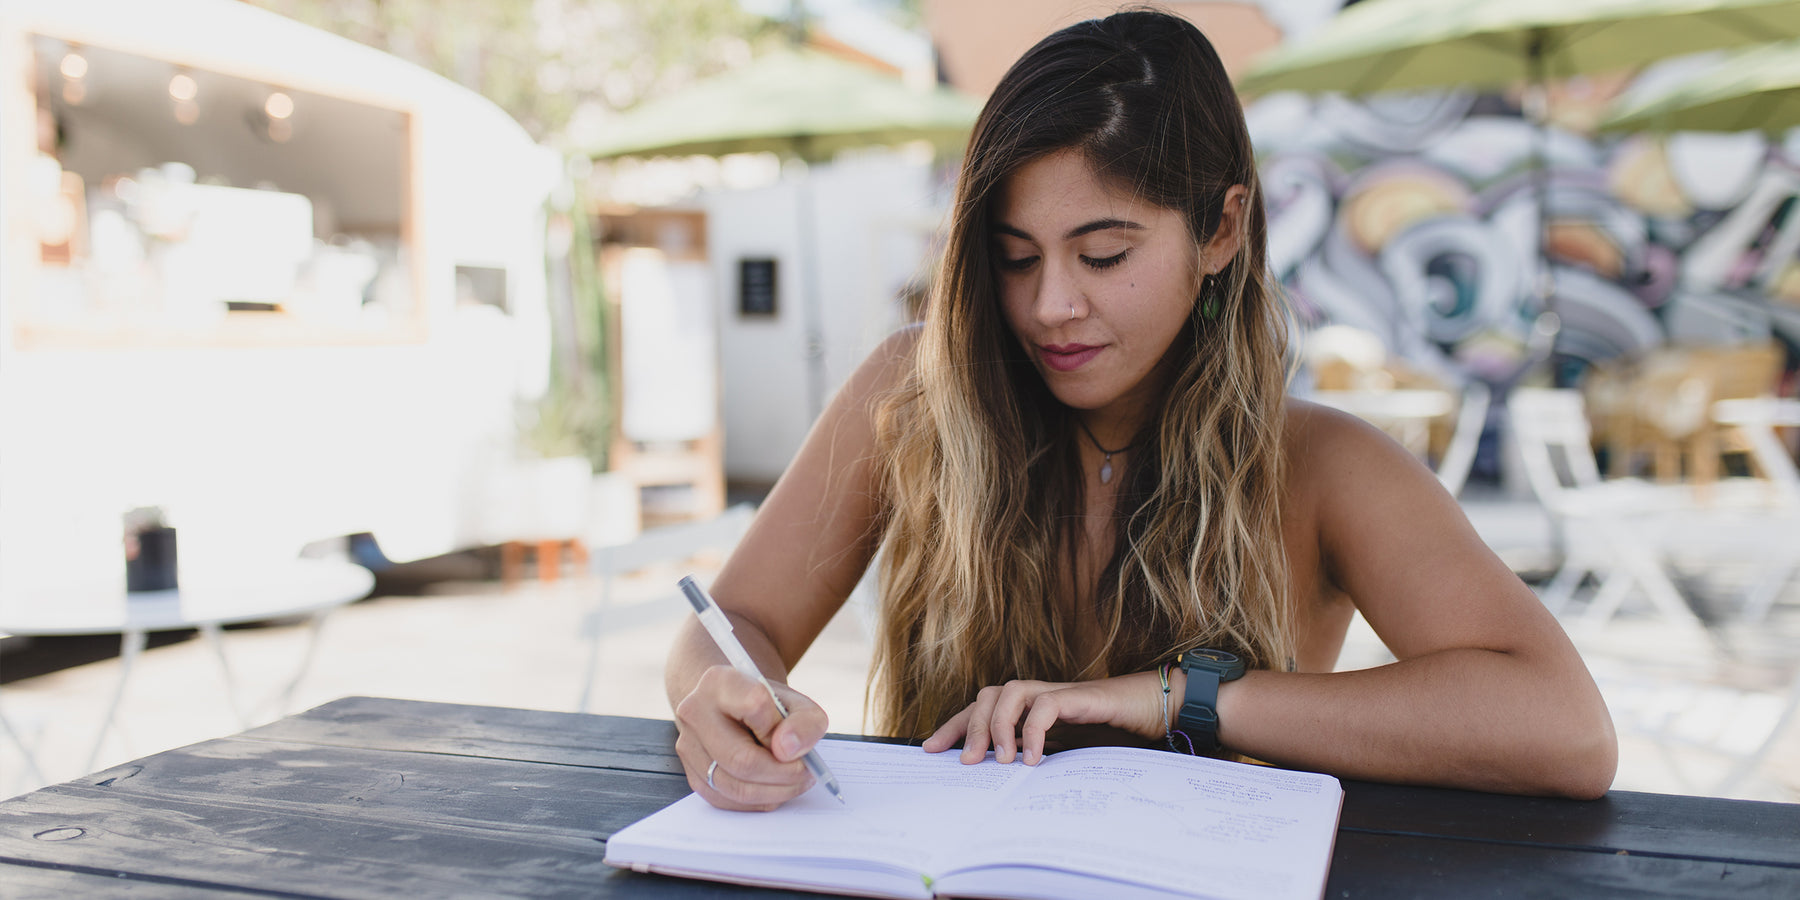 Can Writing Improve Your Mental Health?